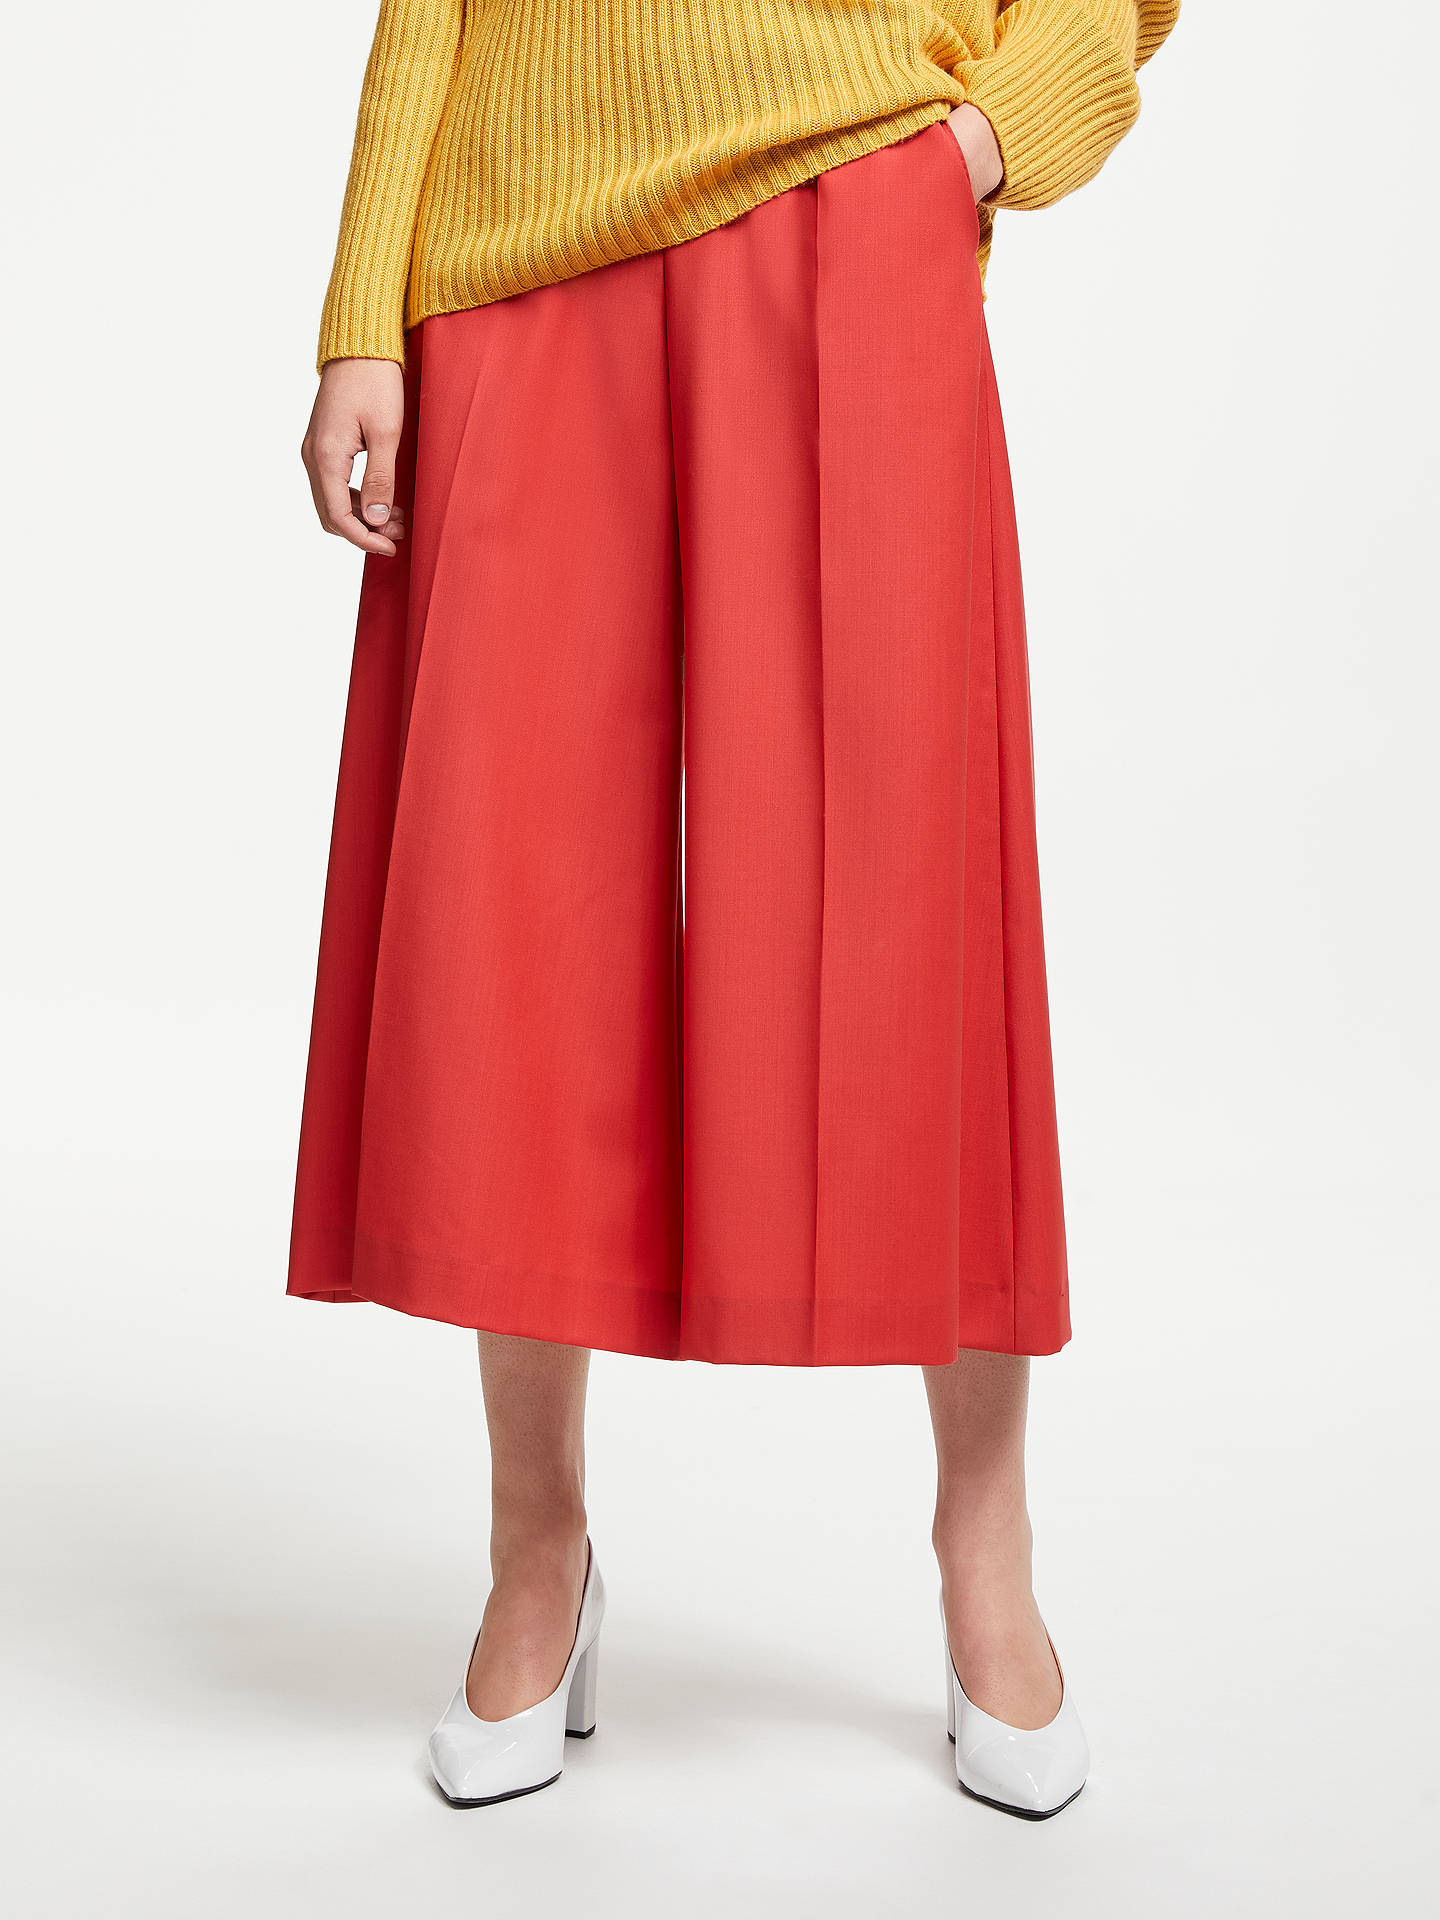 BuyJohn Lewis & Partners Wide Leg Wool Culottes, Orange, 8 Online at johnlewis.com